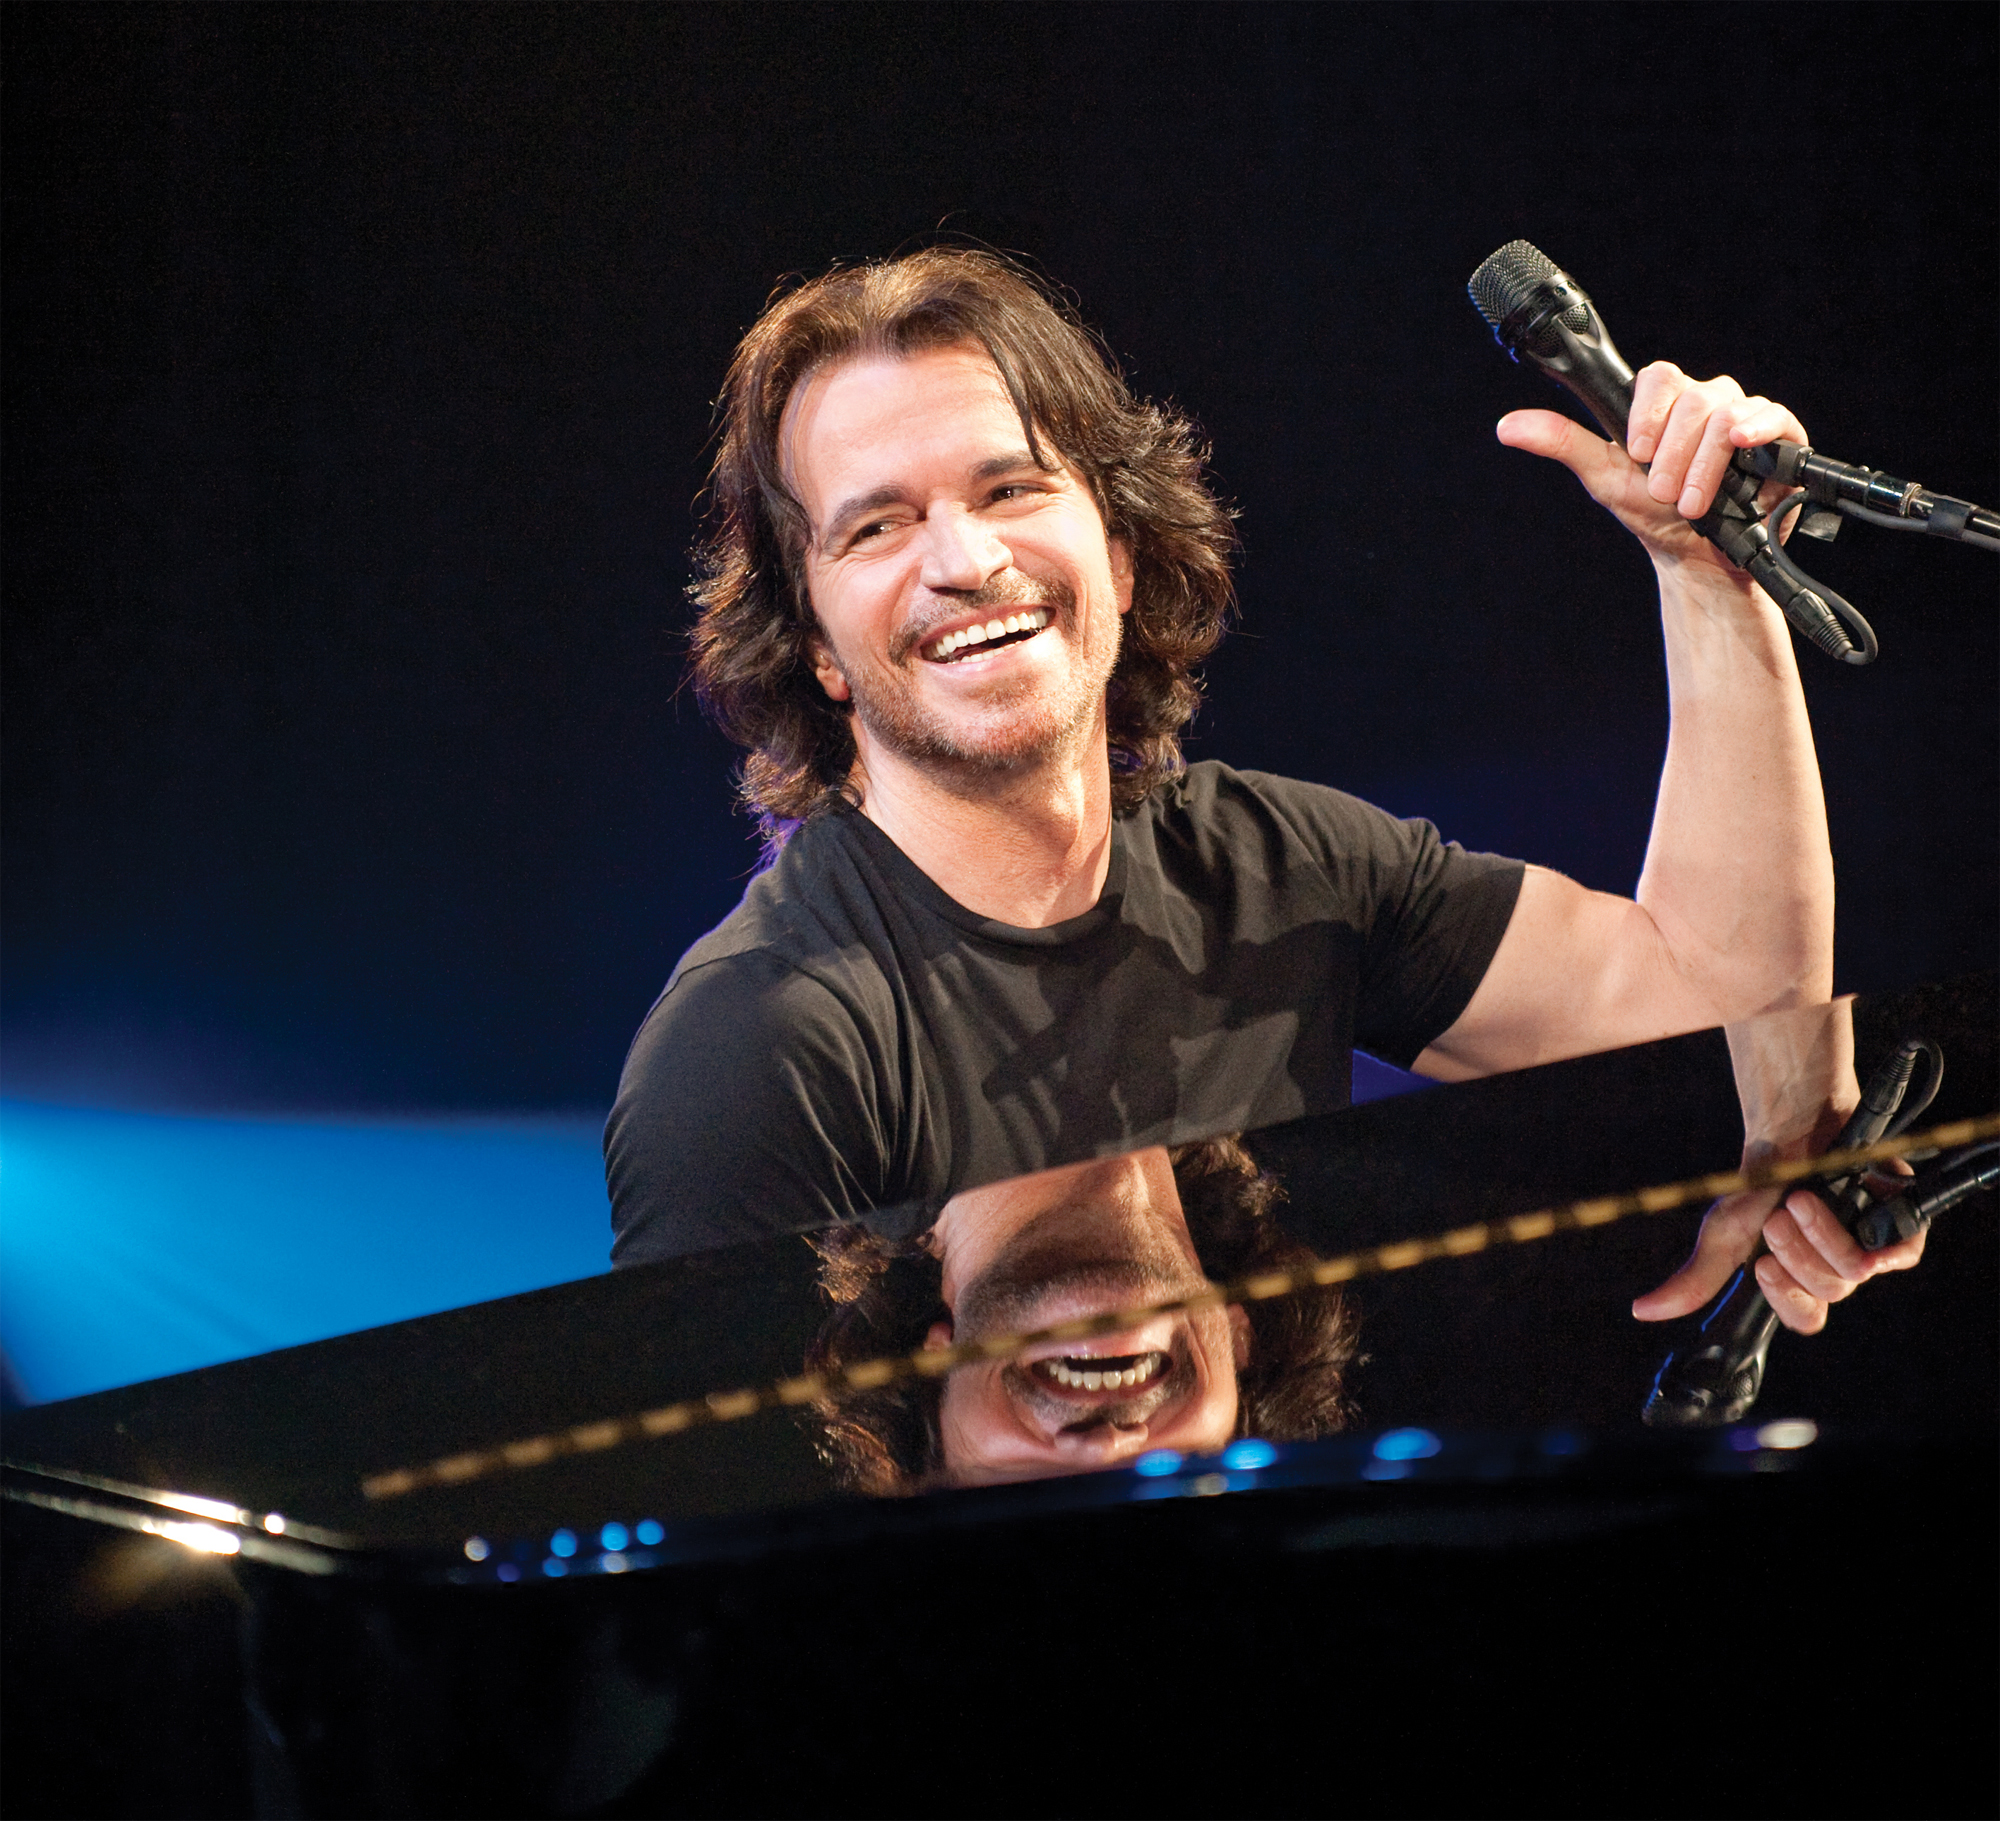 Yanni celebrates 25th anniversary of Live at the Acropolis at Kirby Center in Wilkes Barre on July 31